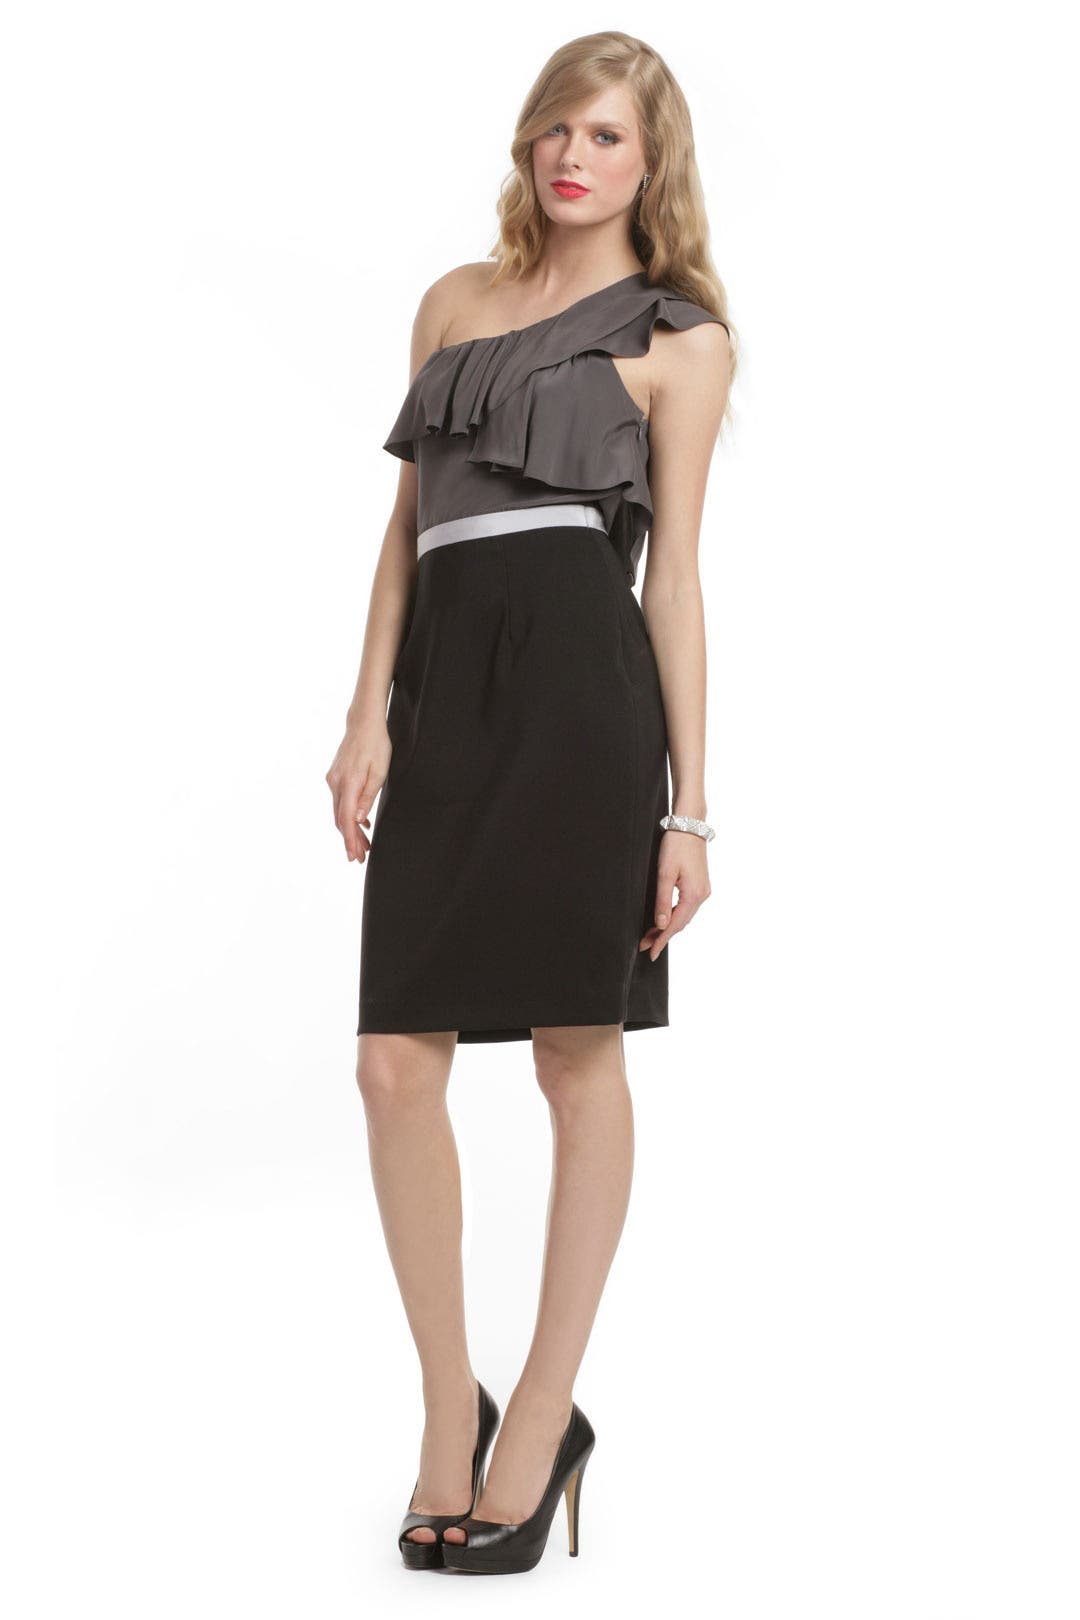 Charcoal Colorblock Ruffle Dress by Jay Godfrey